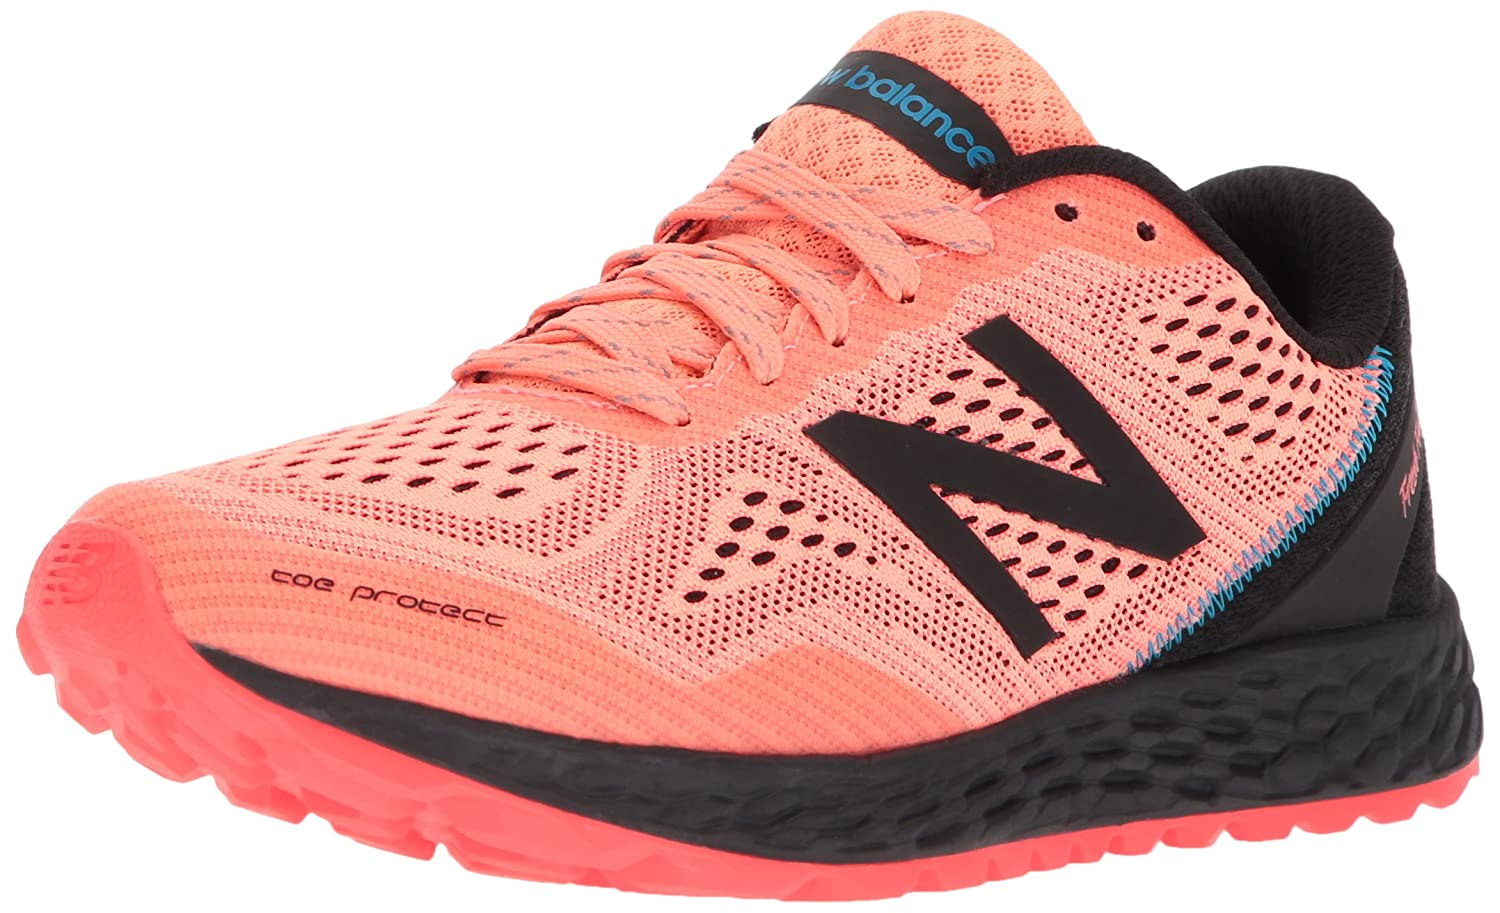 New Balance Women's Gobi v2 Fresh Foam Trail Running Shoe B06XSCM6SD 8 B(M) US|Pink/Black